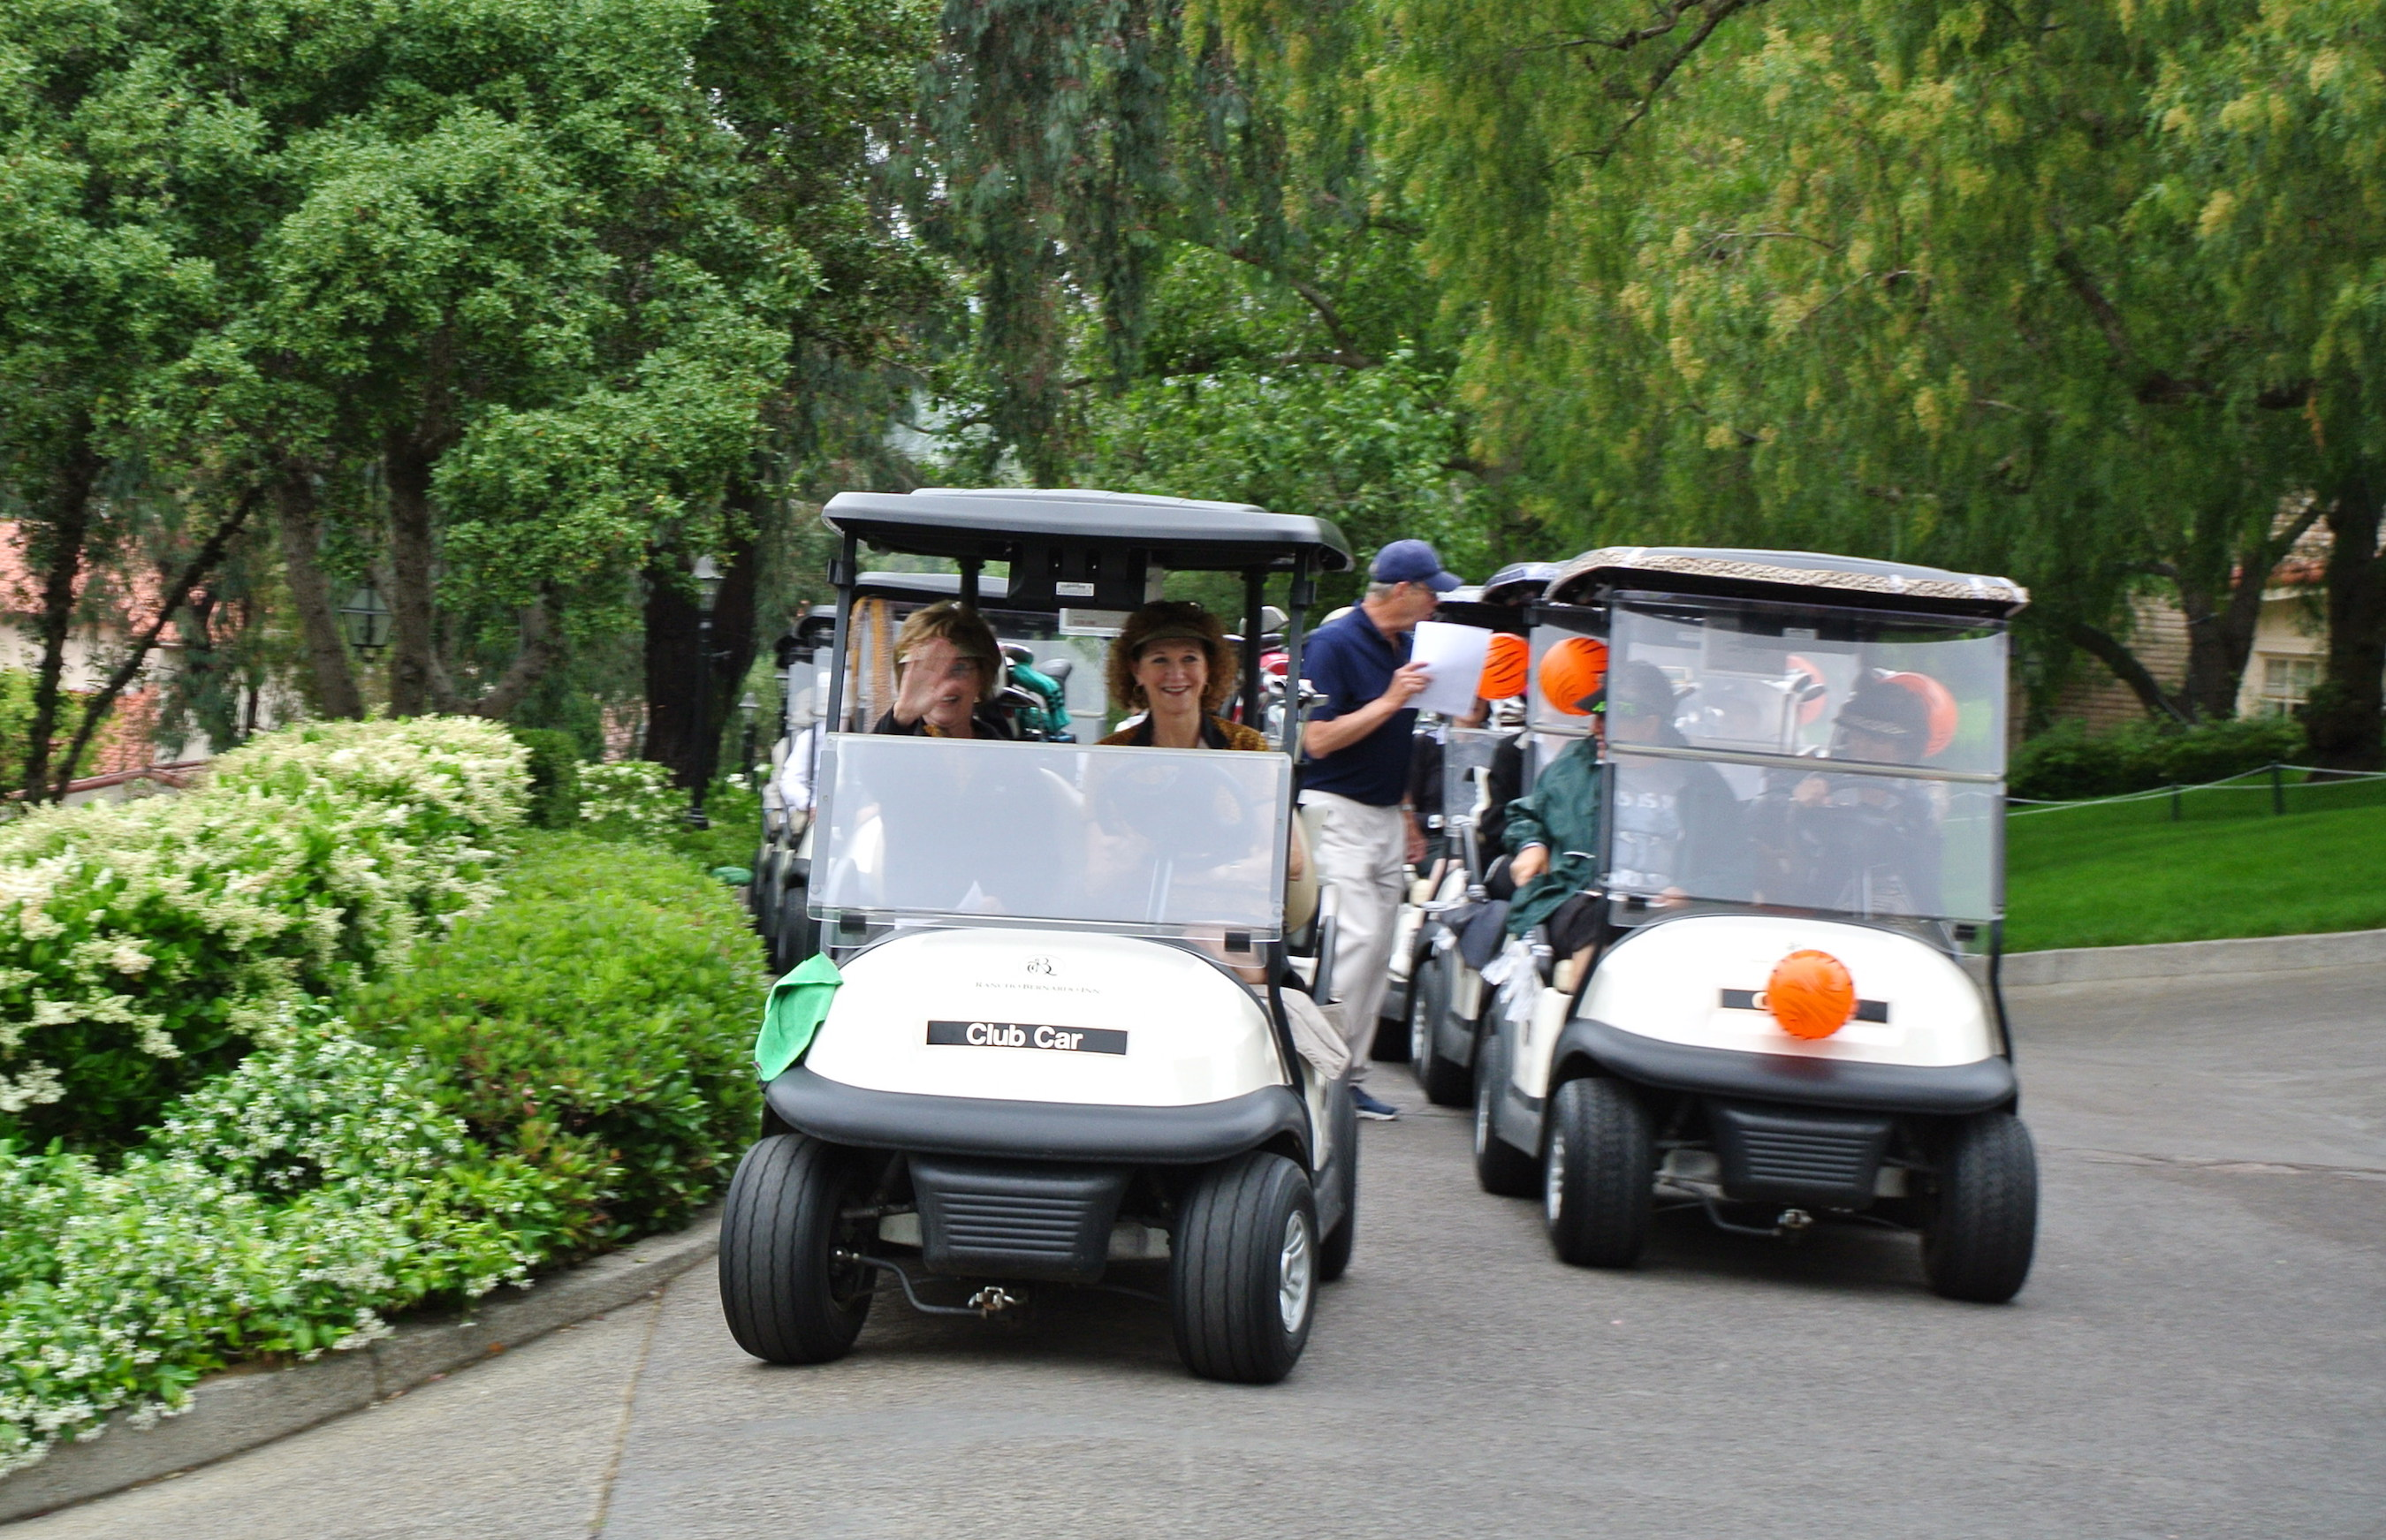 Golfers begin the caravan to their starting tee assignments